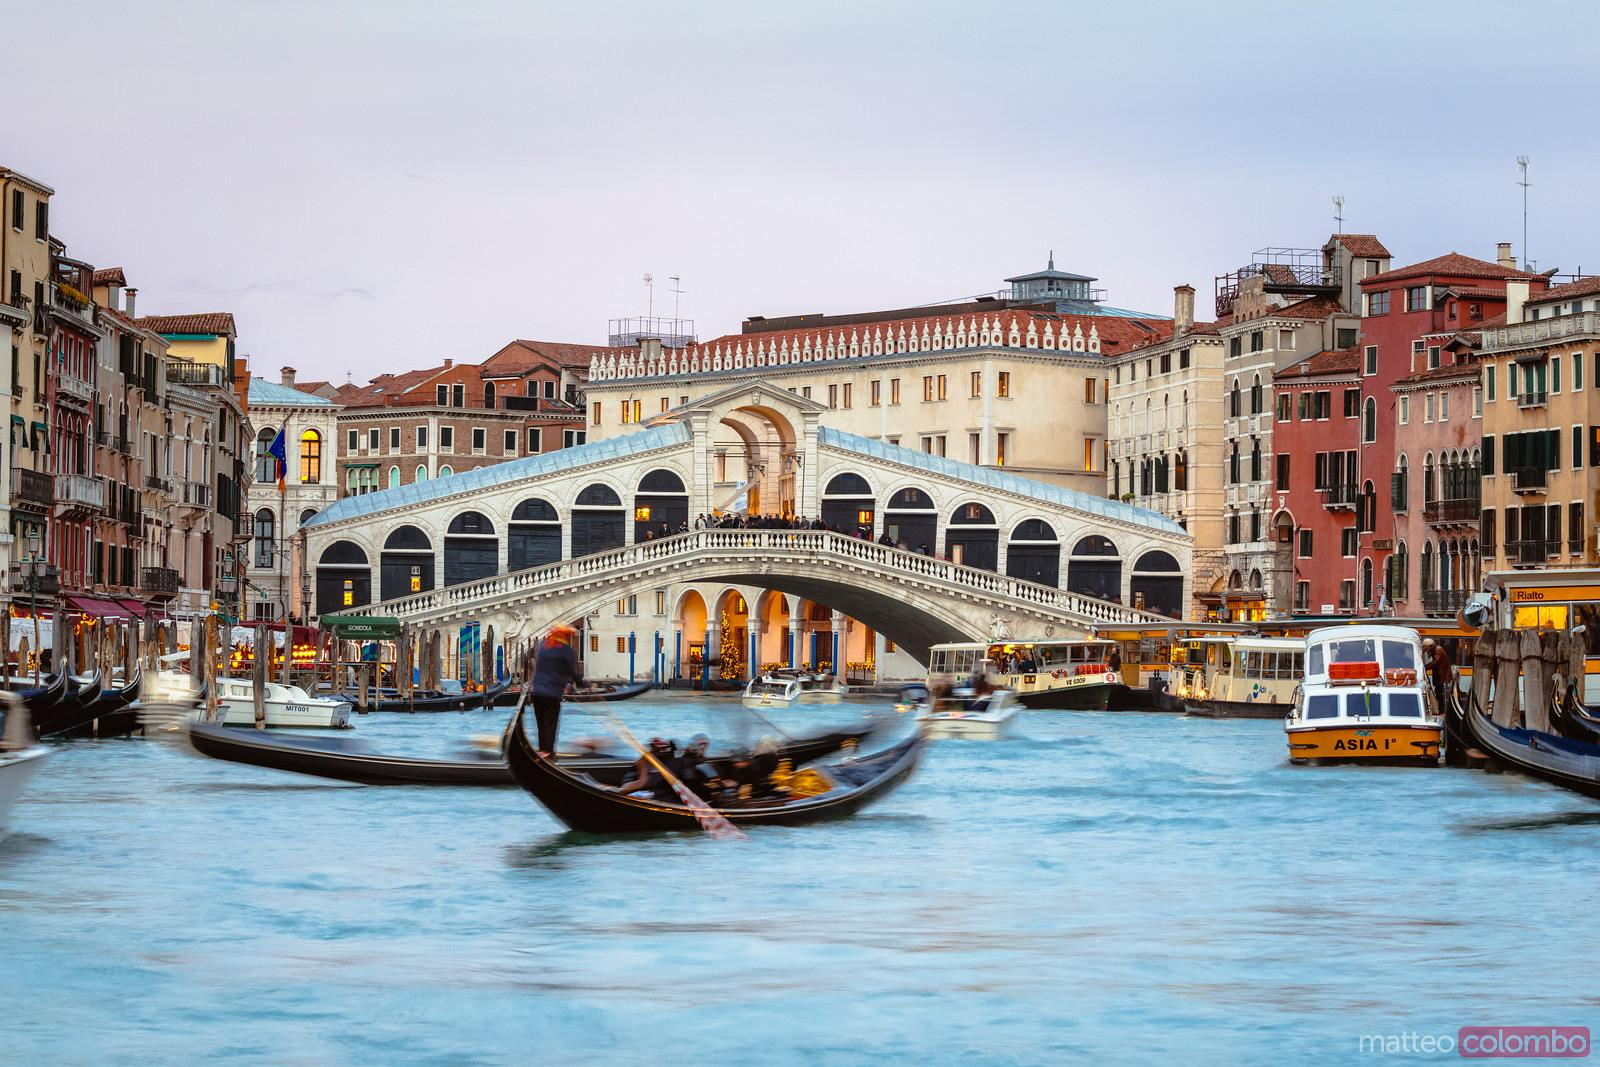 Rialto bridge and gondola at sunset, Venice, Italy